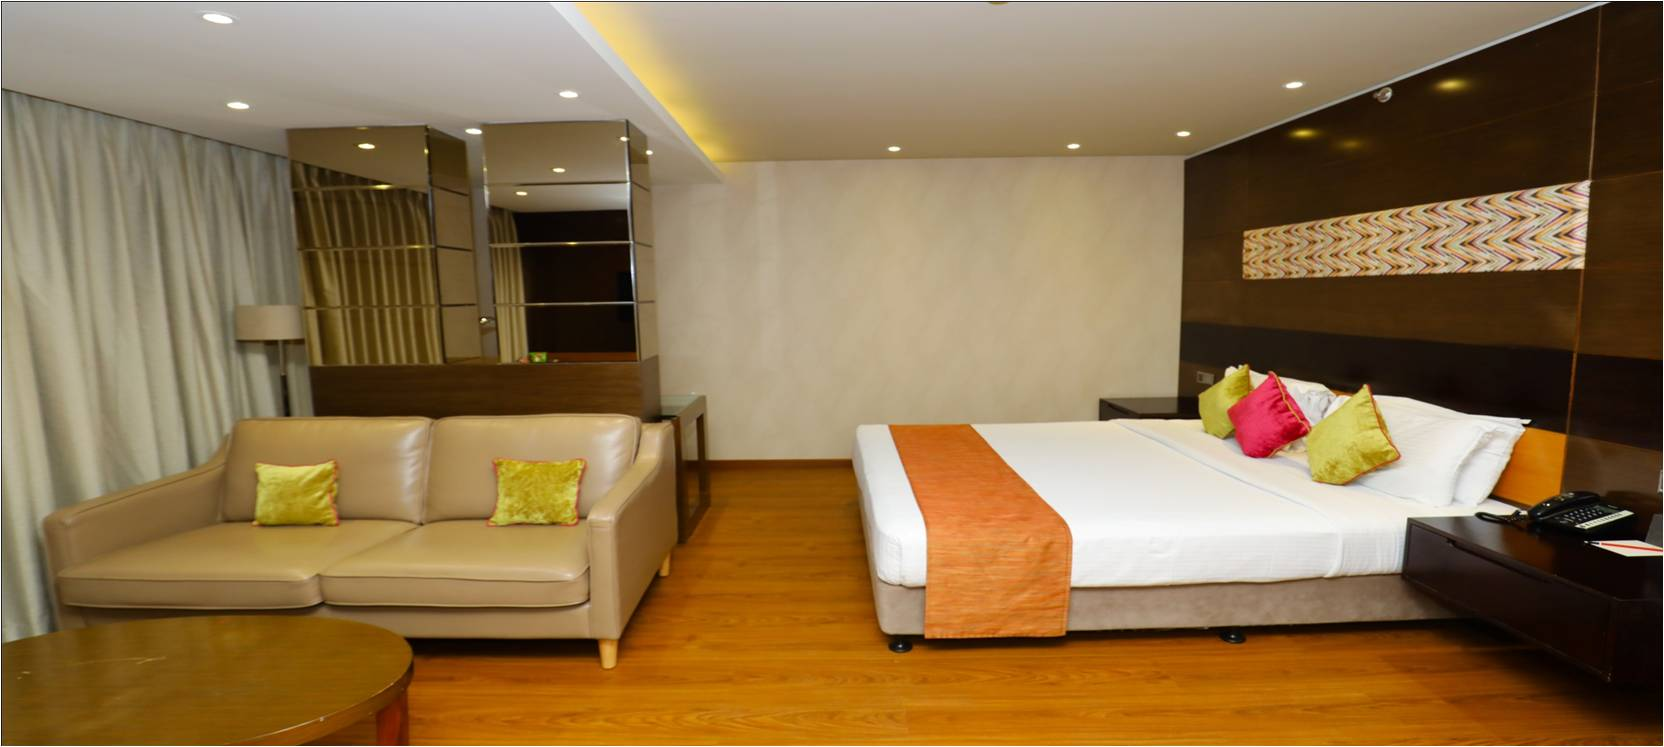 5 Star hotels in bhubaneswar